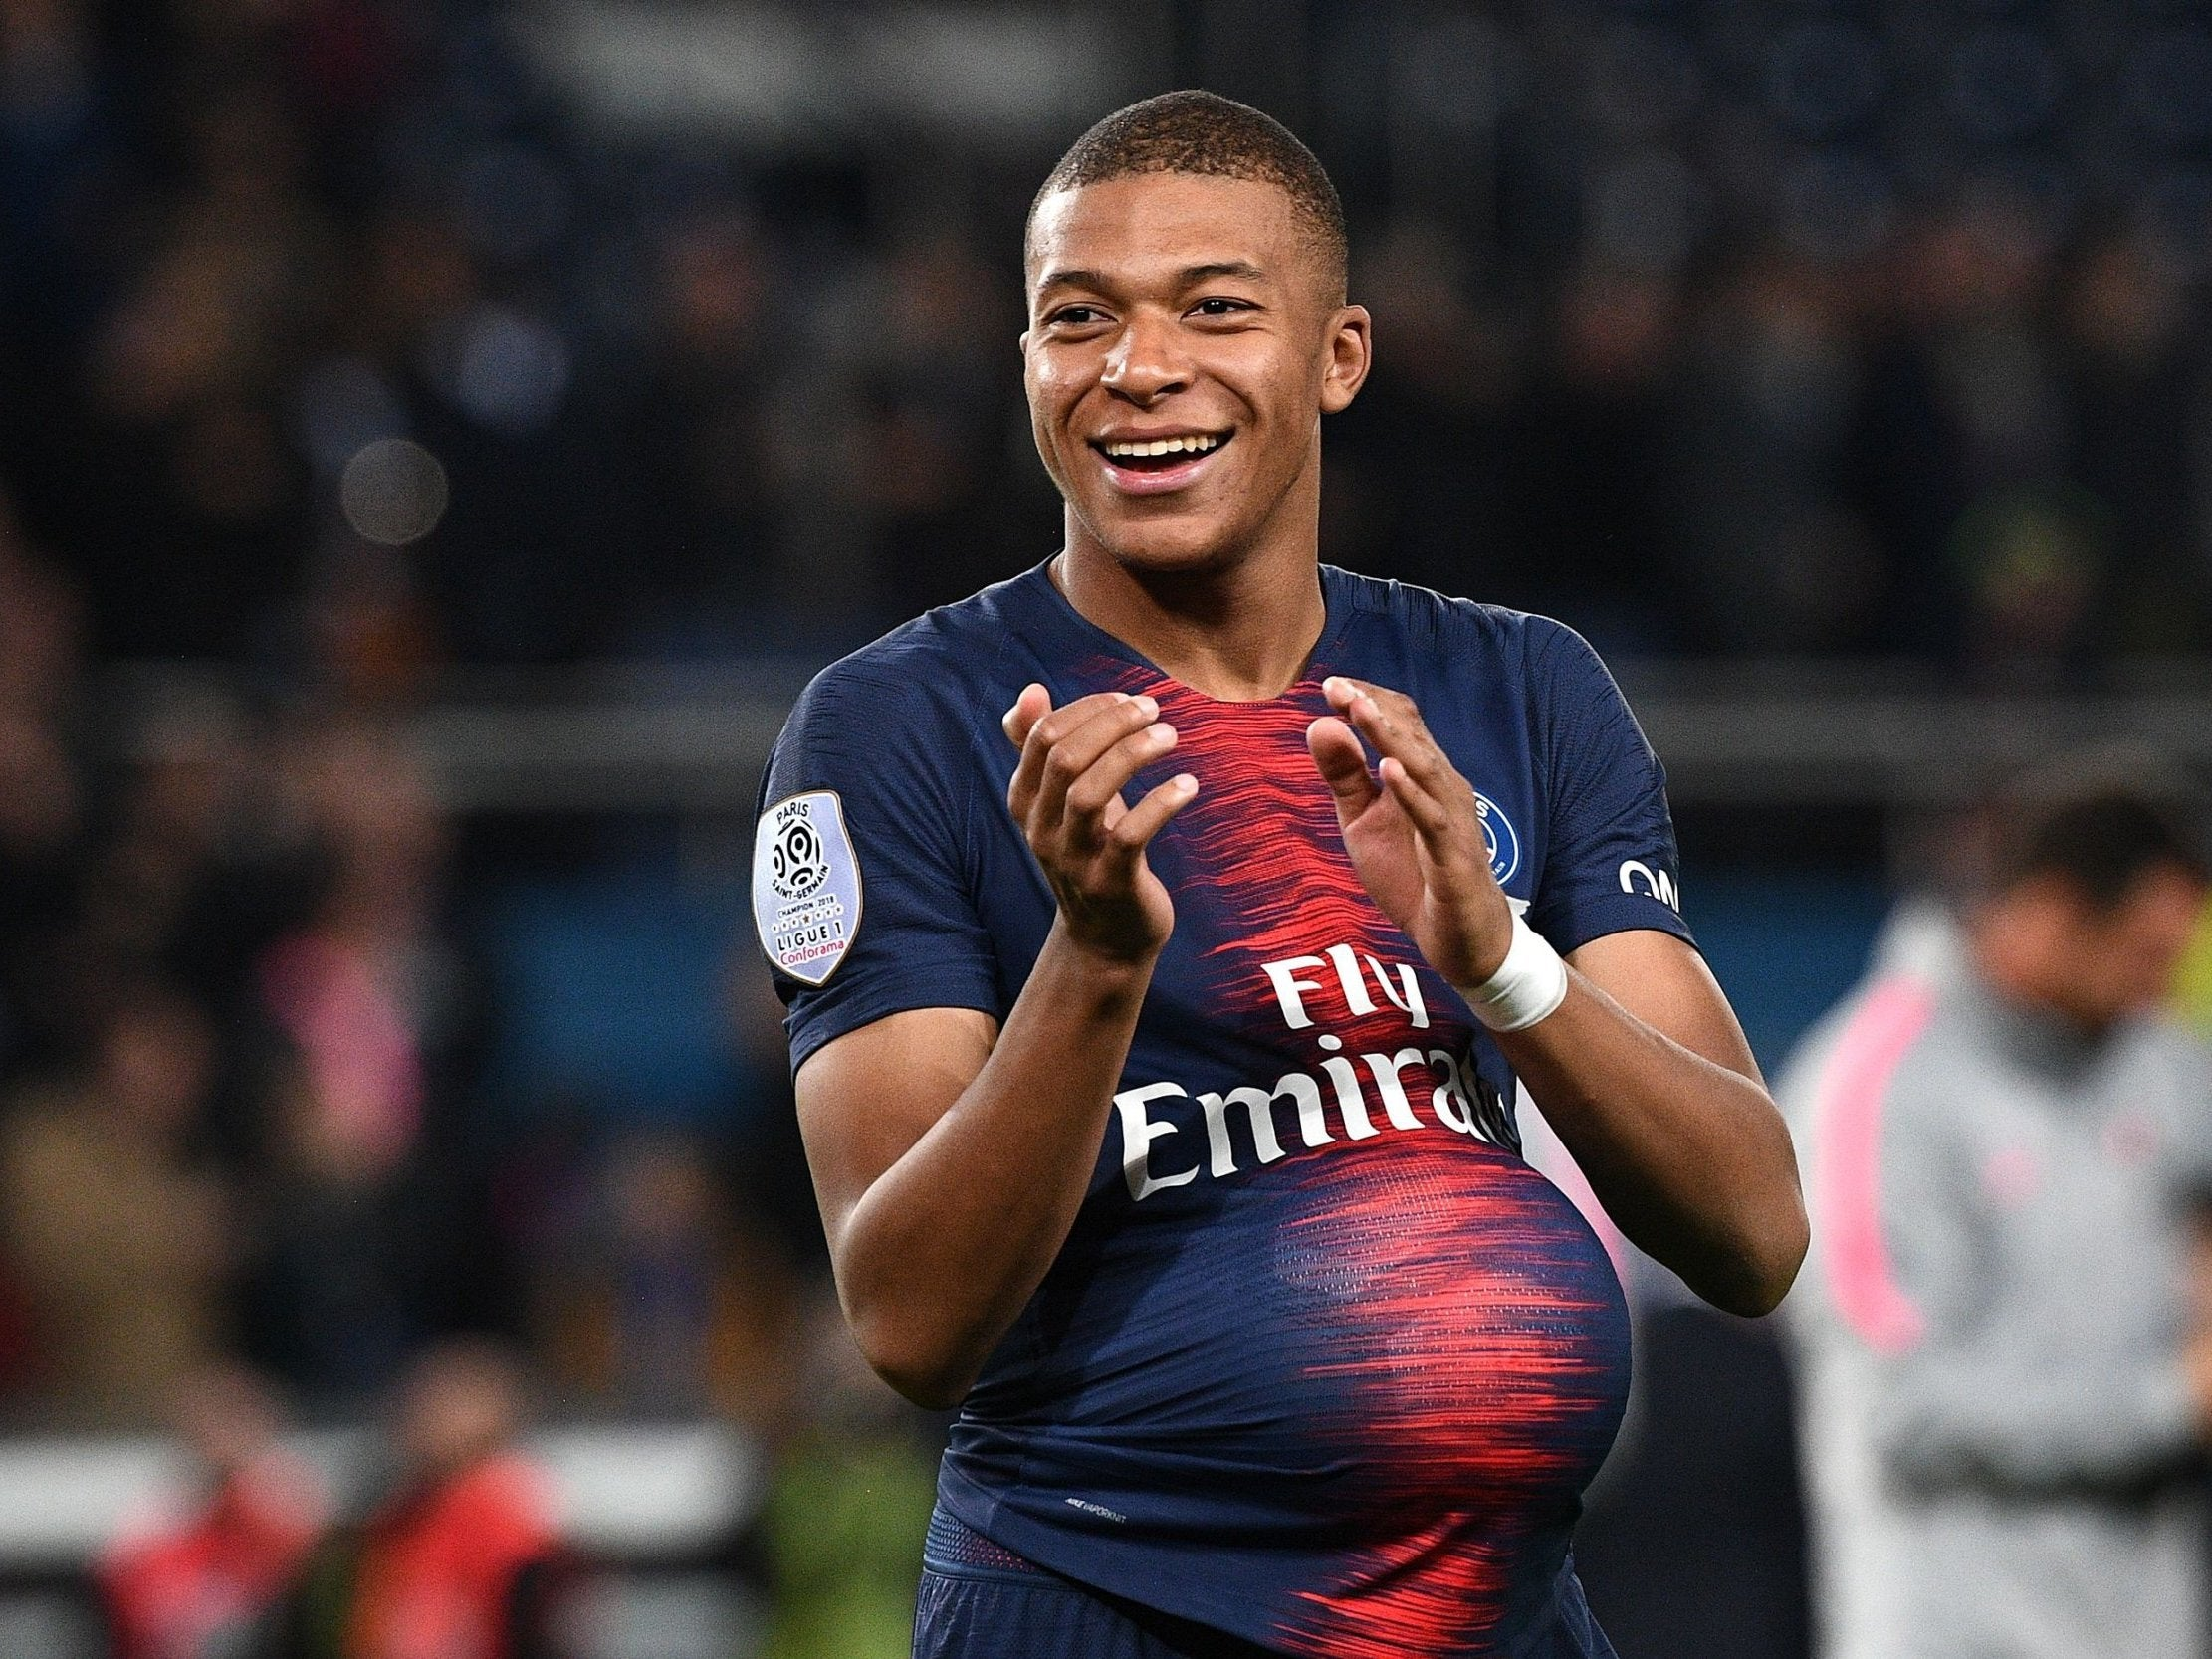 Lionel Messi and Cristiano Ronaldo are still the world's best but won't win the Ballon d'Or, says Kylian Mbappe